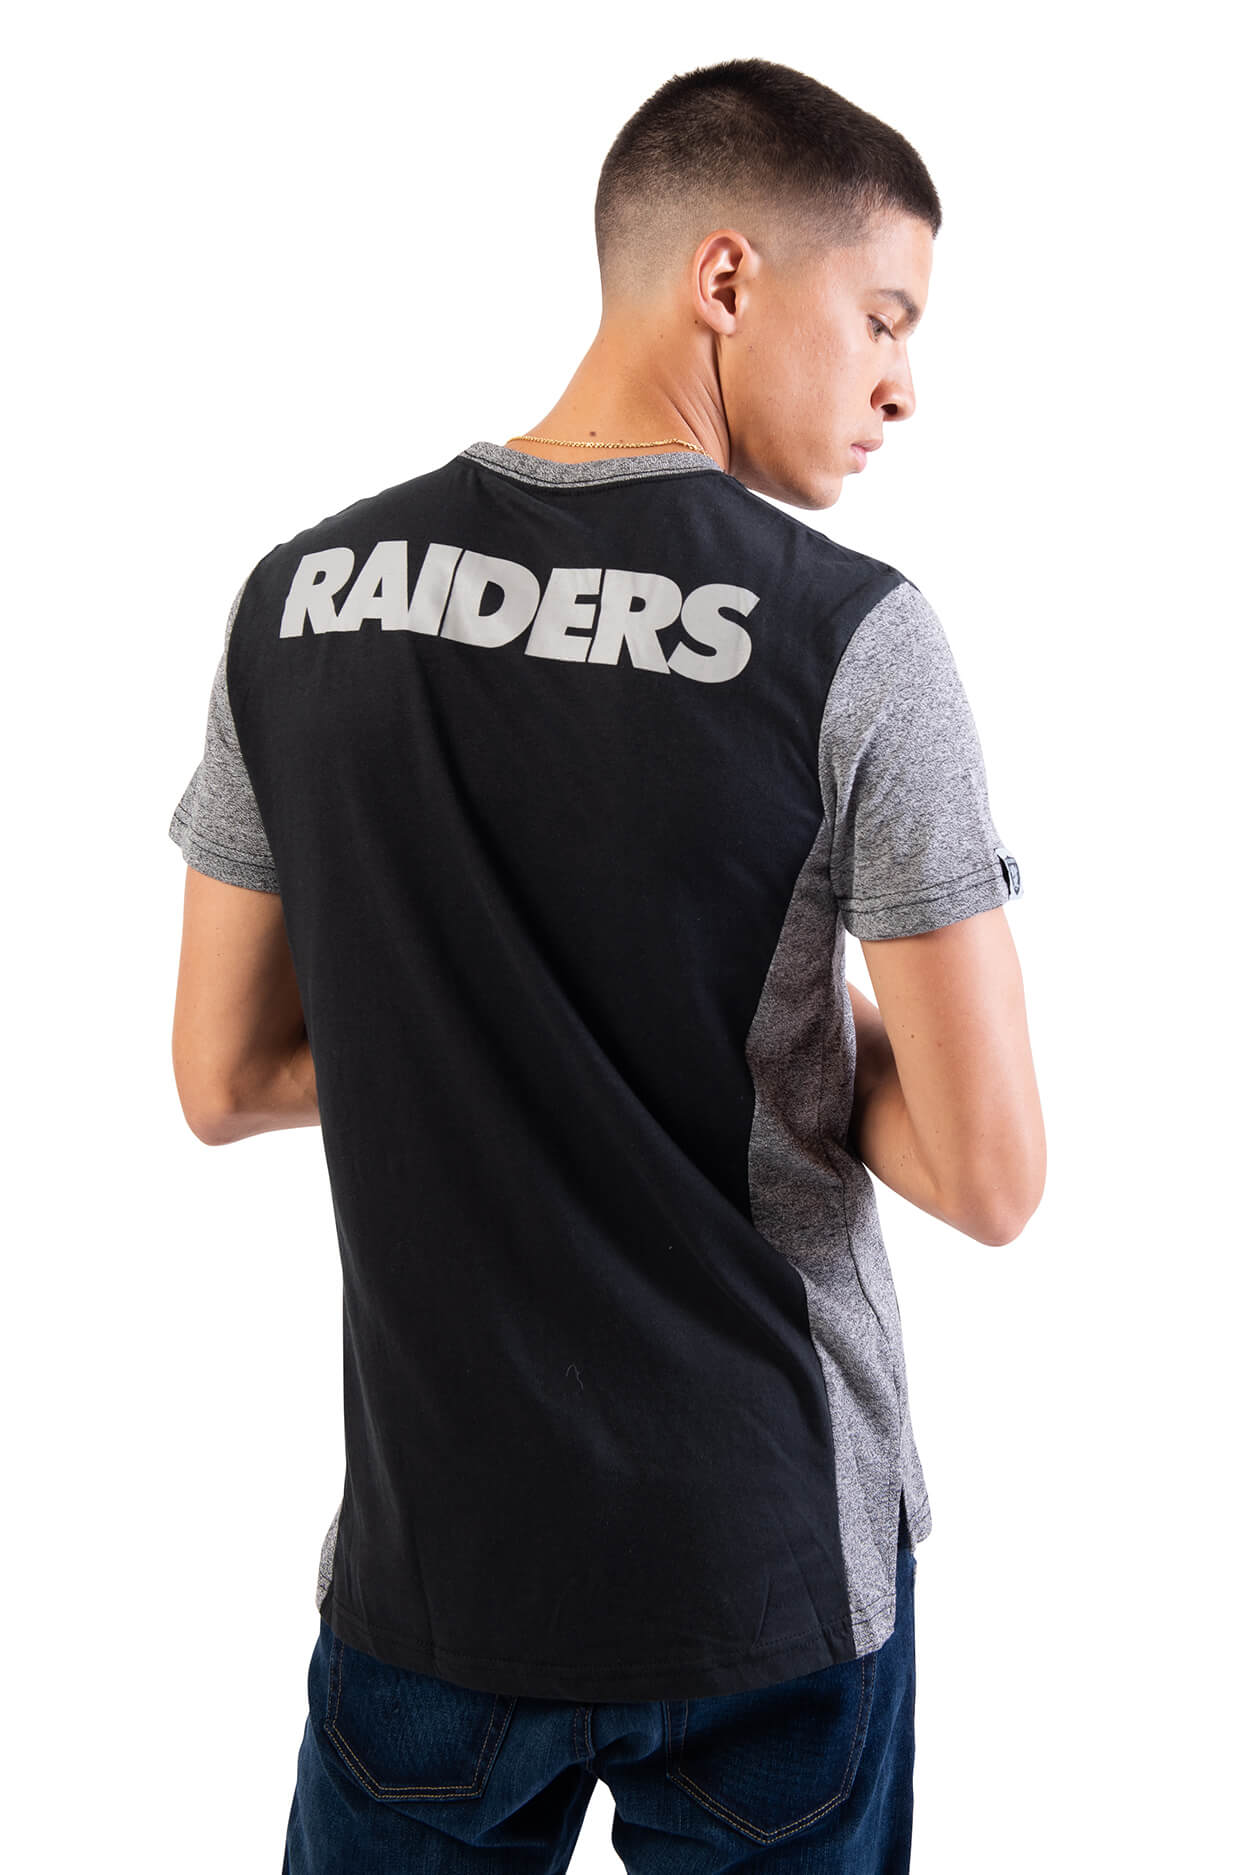 NFL Oakland Raiders Men's Raglan Short Sleeve Tee|Oakland Raiders